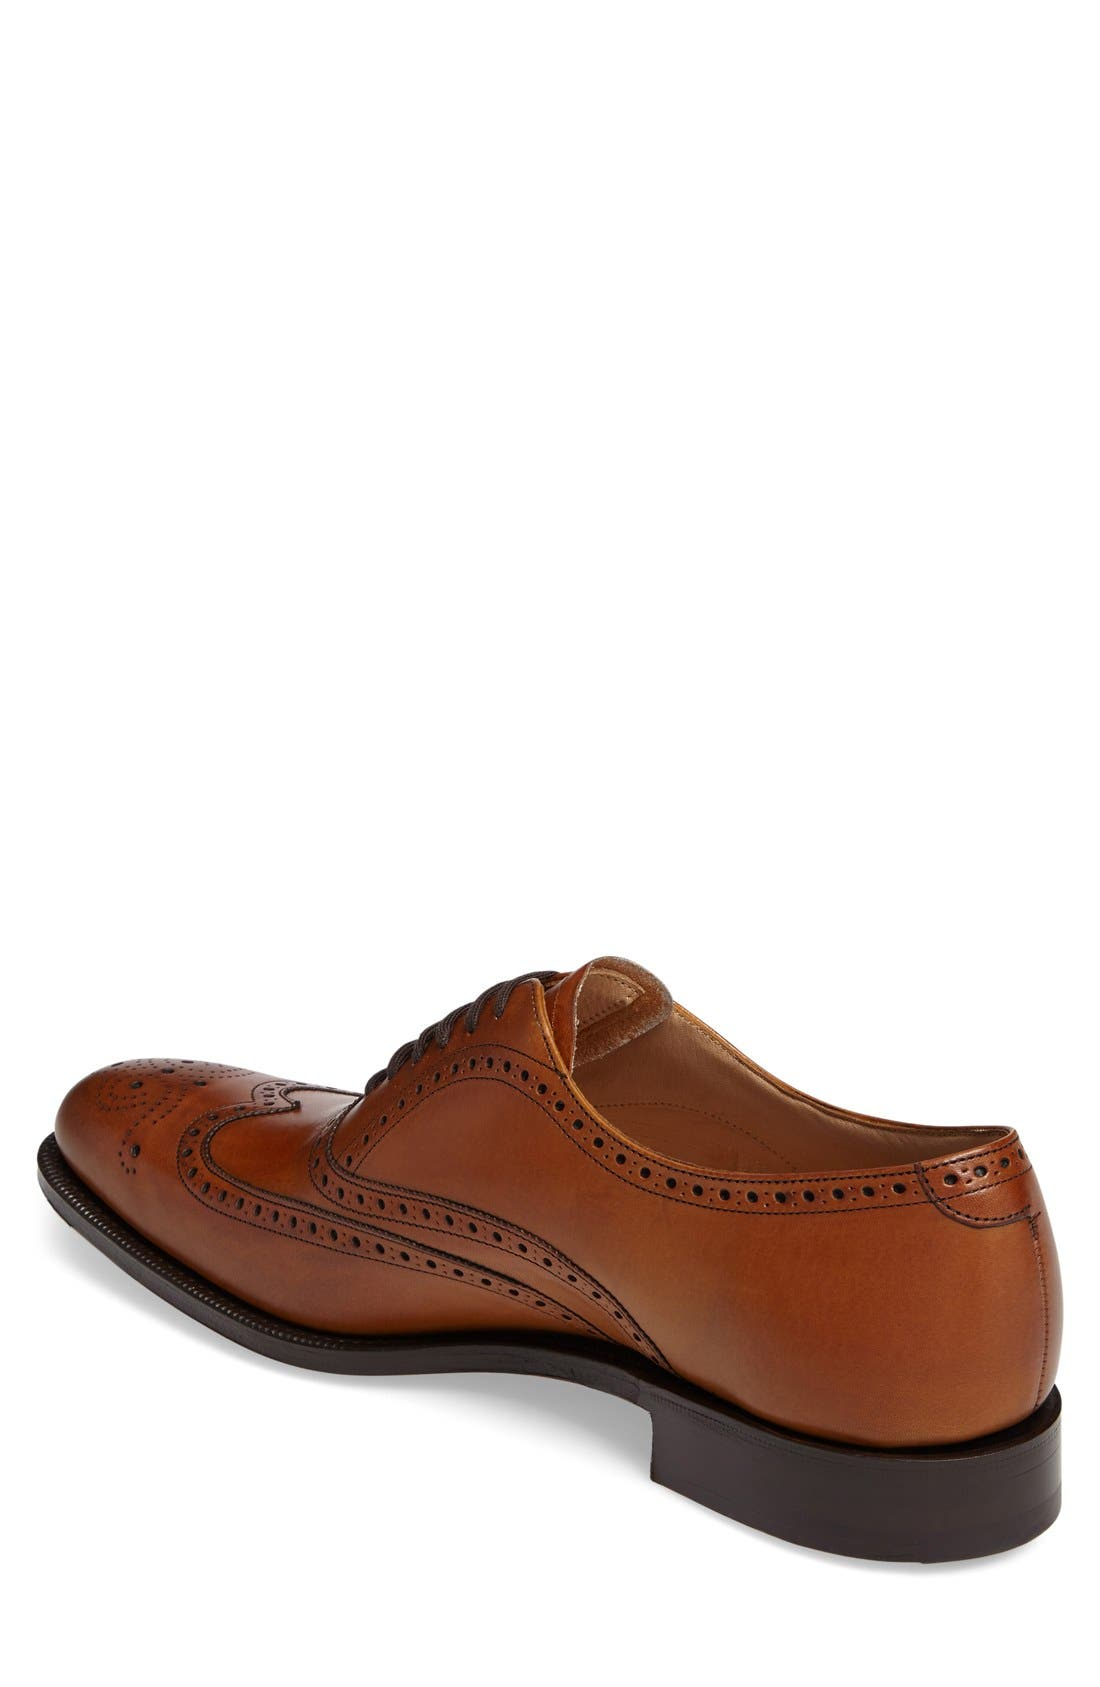 'Berlin' Wingtip Oxford,                             Alternate thumbnail 2, color,                             Brown Leather